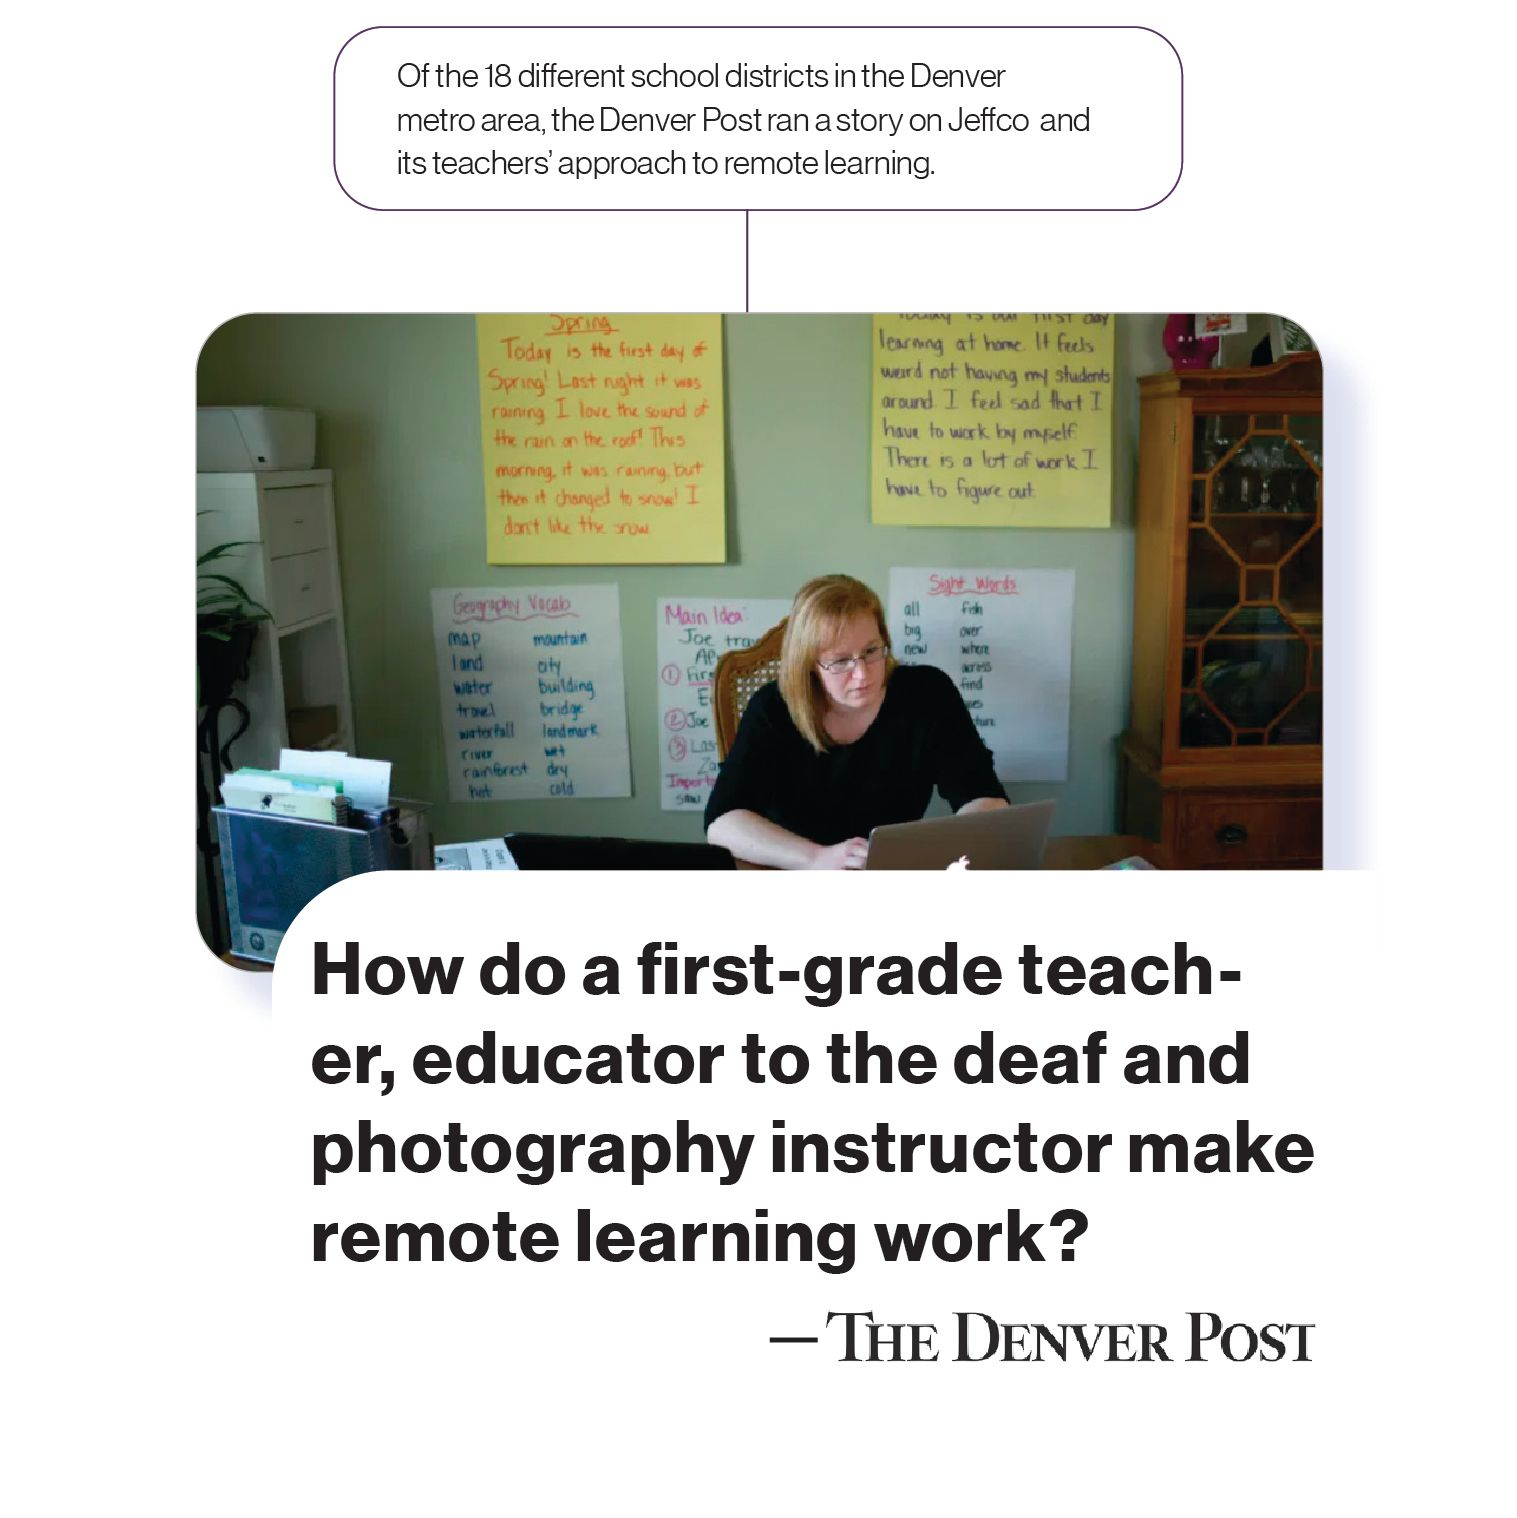 Image: A news story with the headline, 'How do a first-grade teacher, educator to the deaf, and photography instructor make remote learning work?' with the SchoolCEO commentary, 'Of the 18 different school districts in the Denver metro area, the Denver Post ran a story on Jeffco and its teachers' approach to remote learning.'